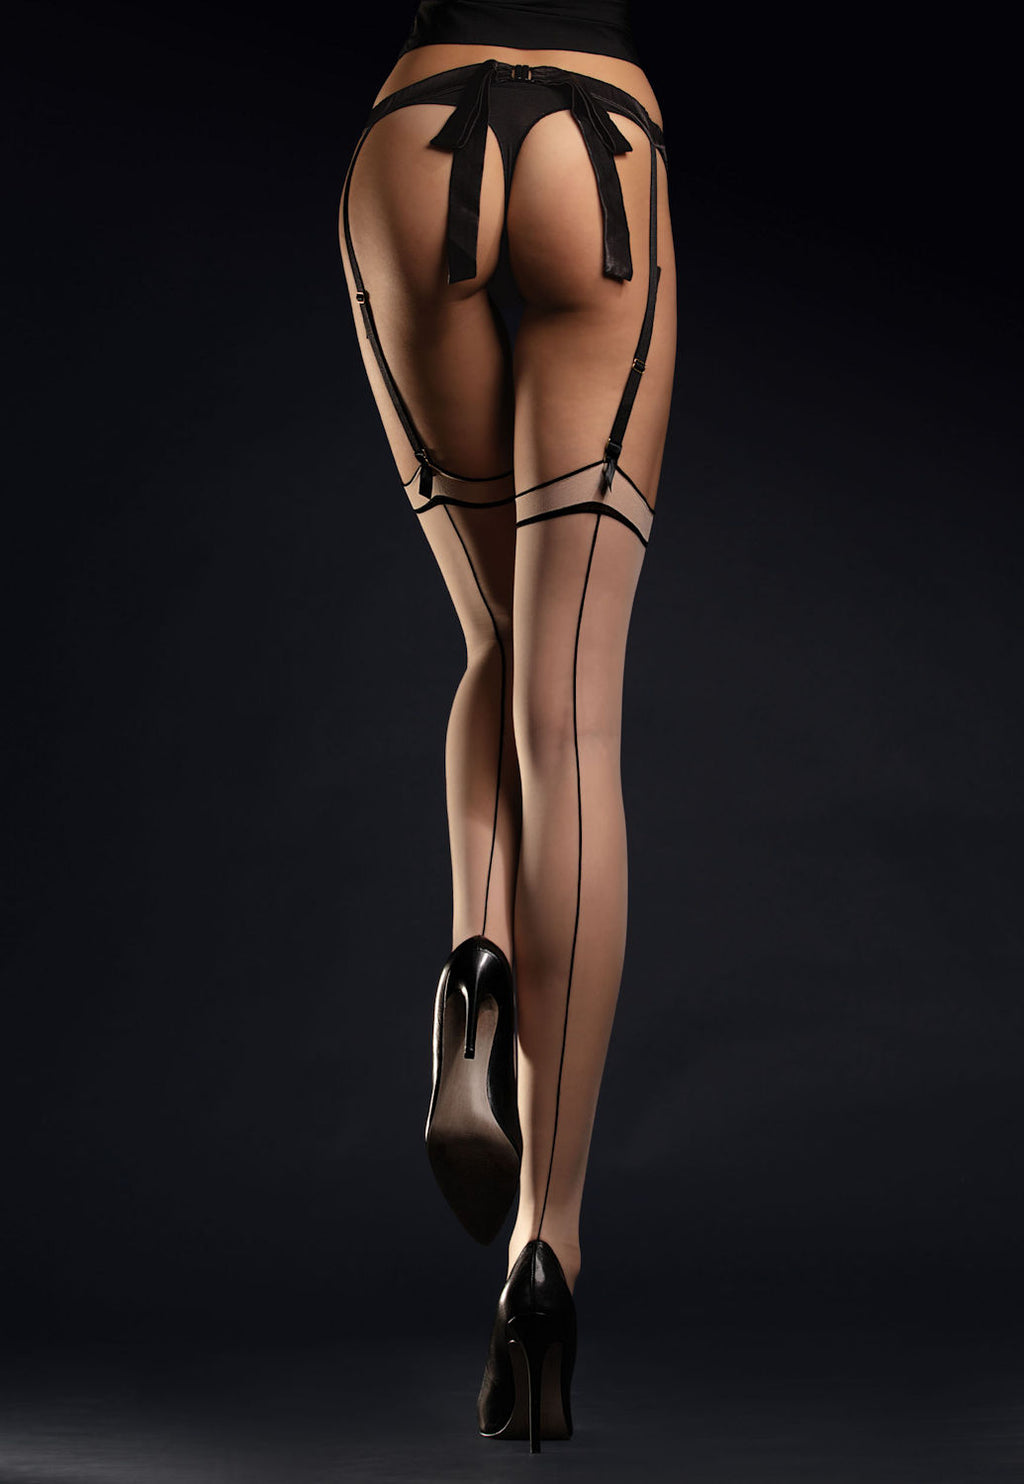 Madame 20 Den Contrast Seam Sheer Stockings by Fiore in nude black